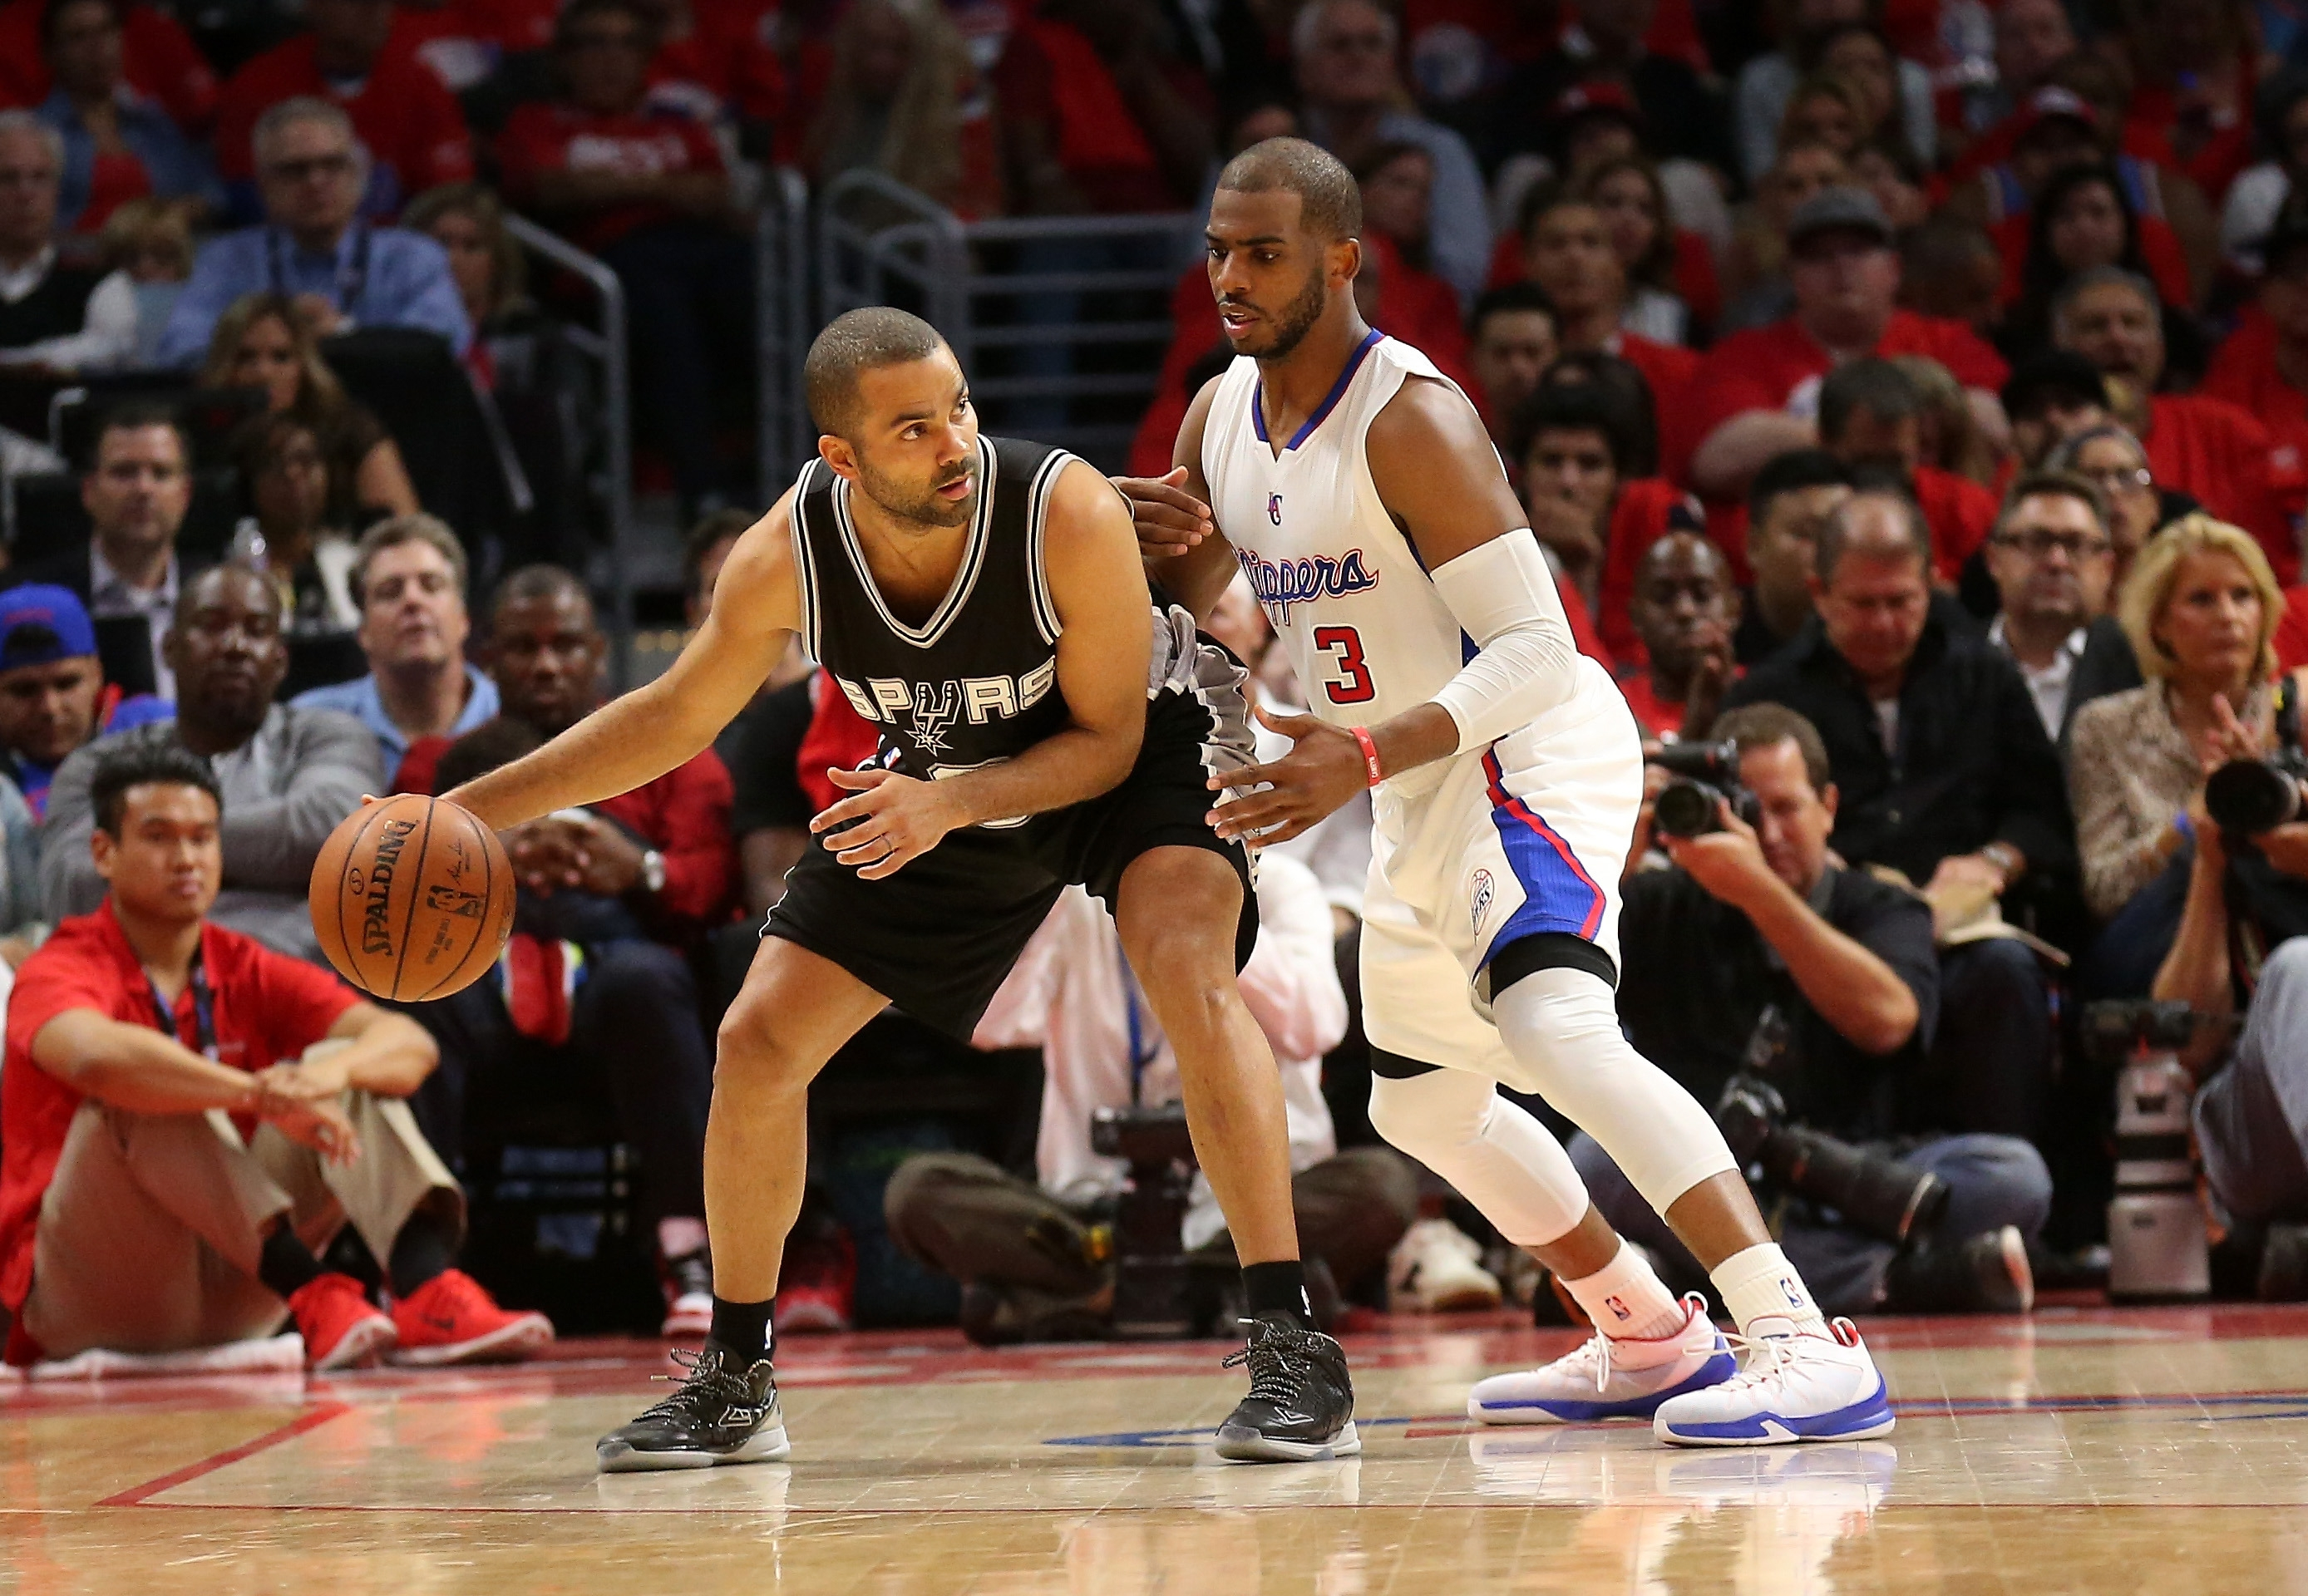 A healthy Tony Parker, dribbling against the Clippers' Chris Paul, is needed for the Spurs to make a deep playoff run.